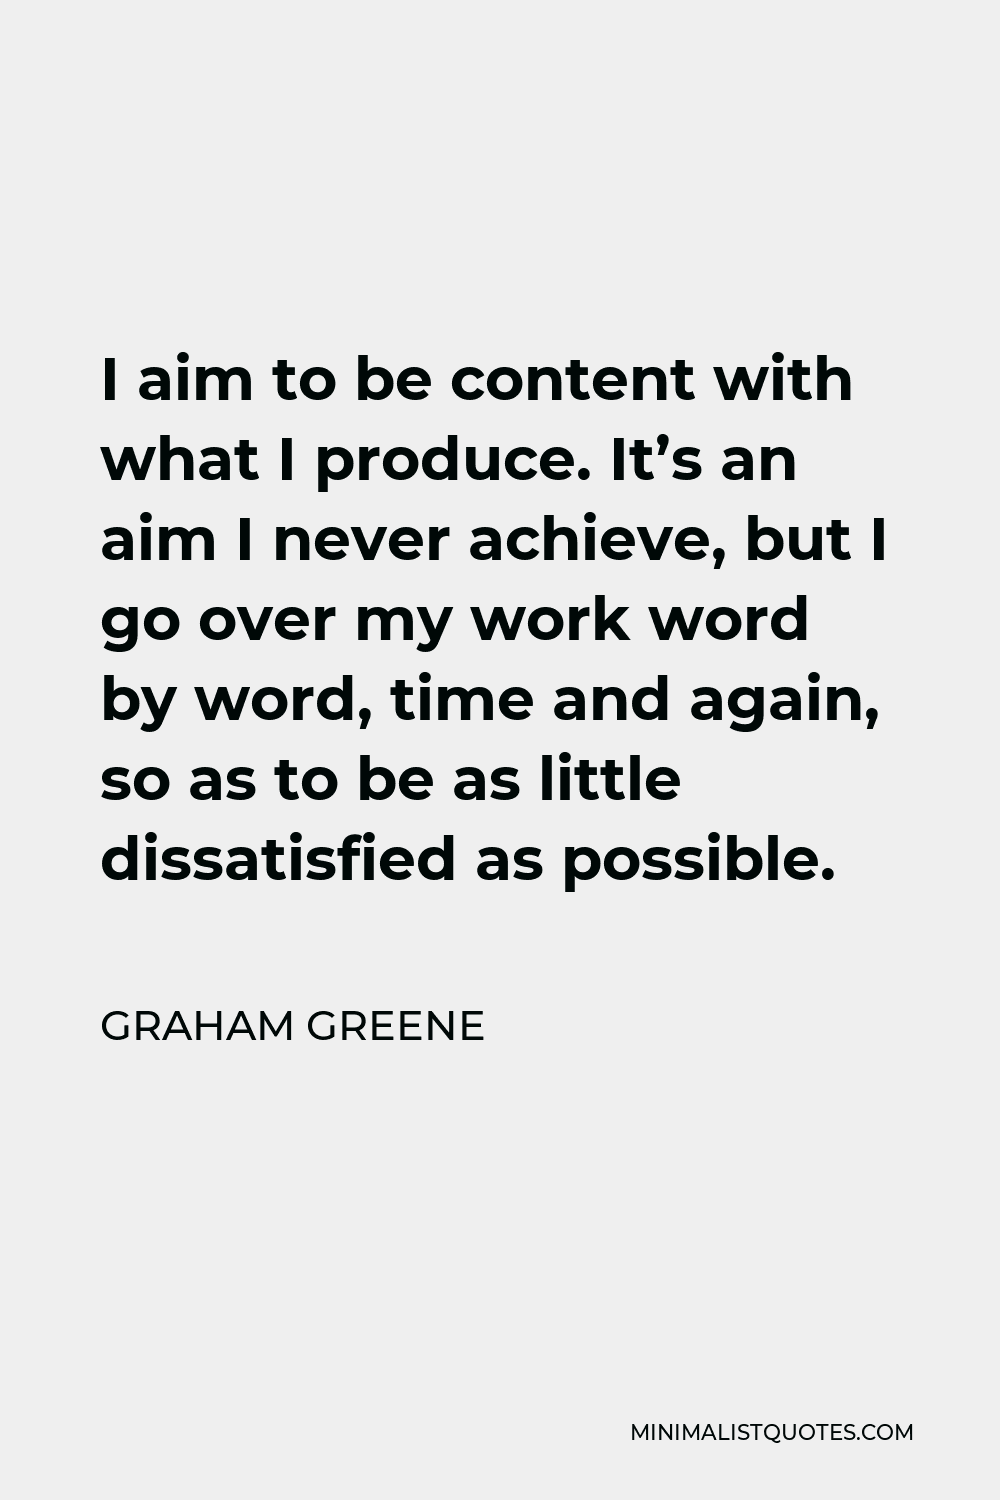 Graham Greene Quote - I aim to be content with what I produce. It's an aim I never achieve, but I go over my work word by word, time and again, so as to be as little dissatisfied as possible.